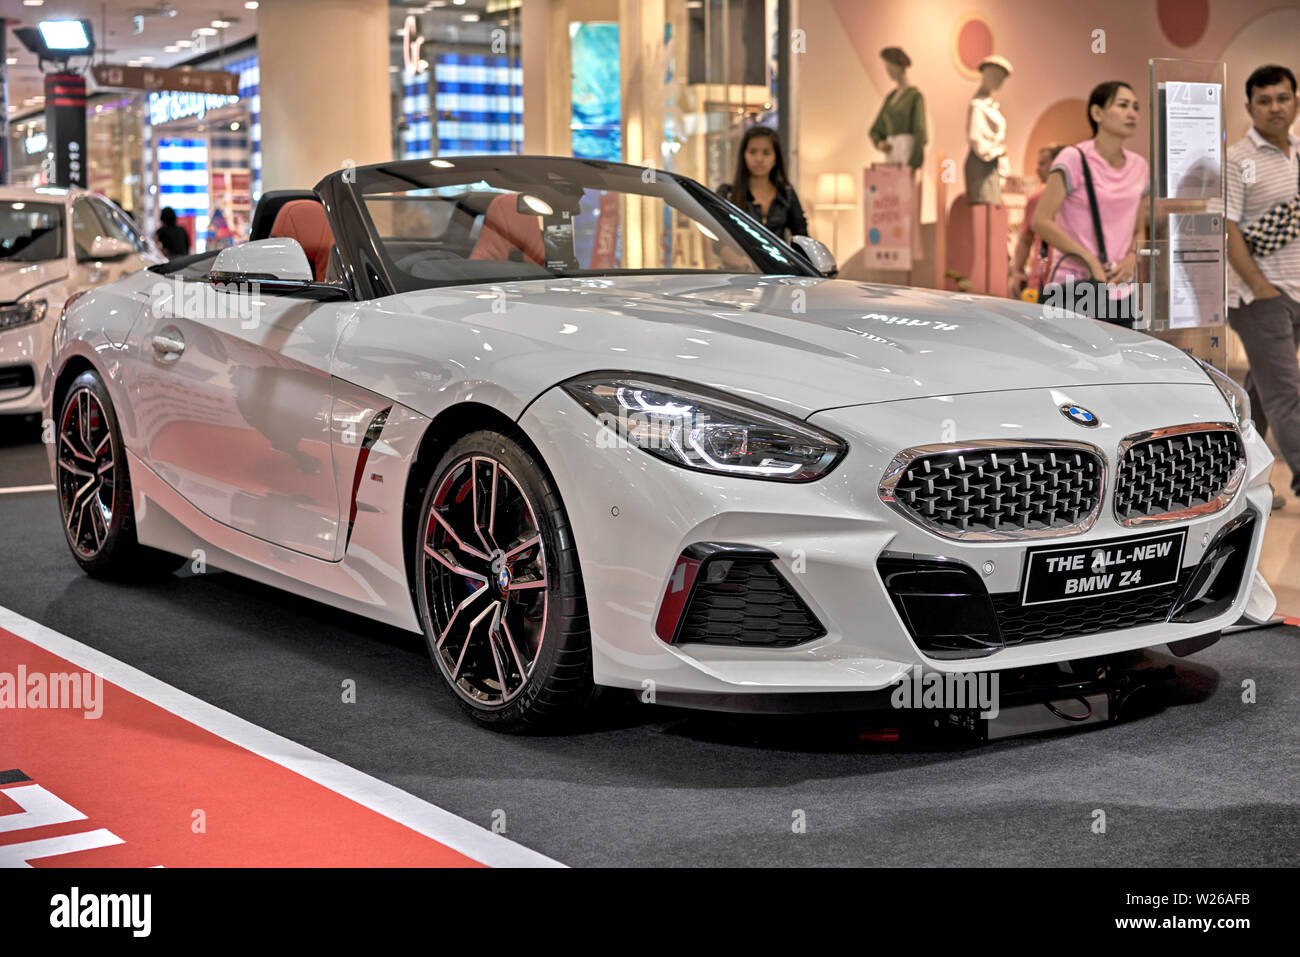 Bmw Z4 2019 New Roadster Convertible Drop Head Car In White Thailand Asia Stock Photo Alamy